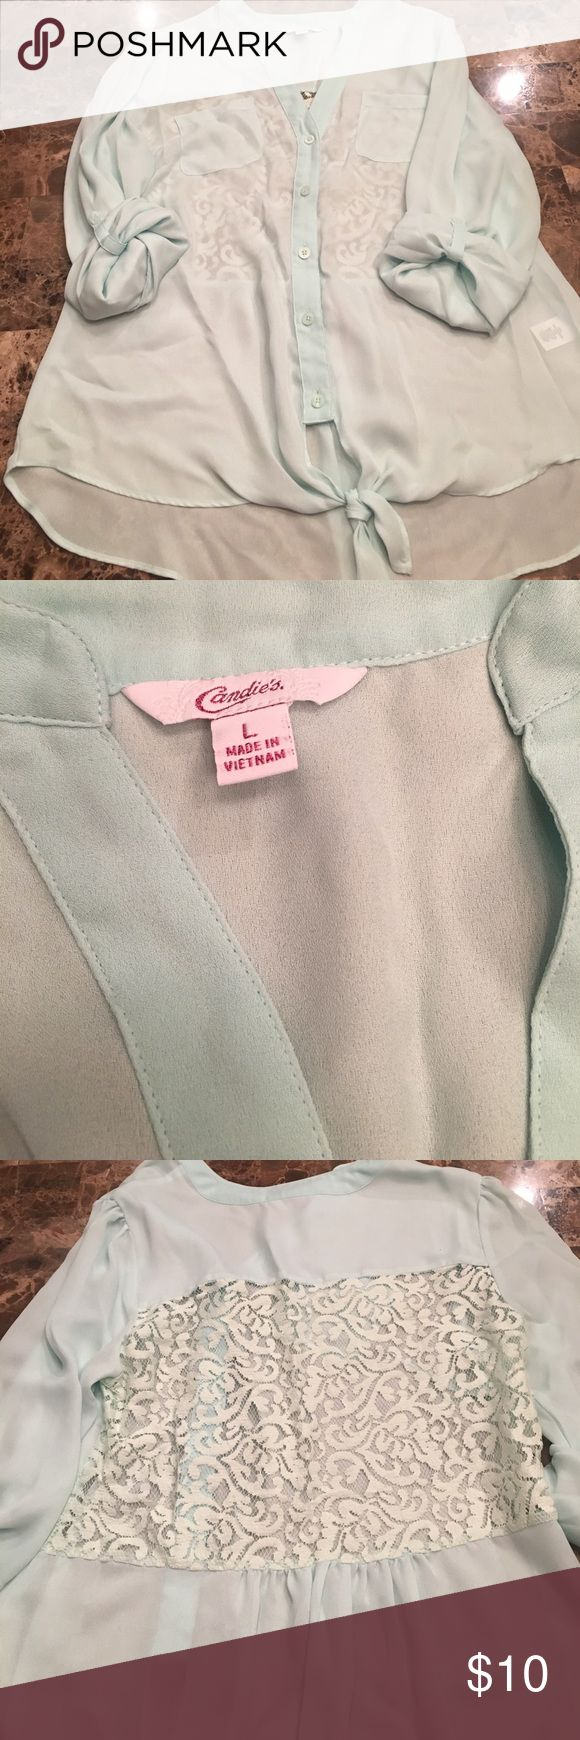 Sheer mint green shirt Excellent condition!!!! Candie's Tops Button Down Shirts